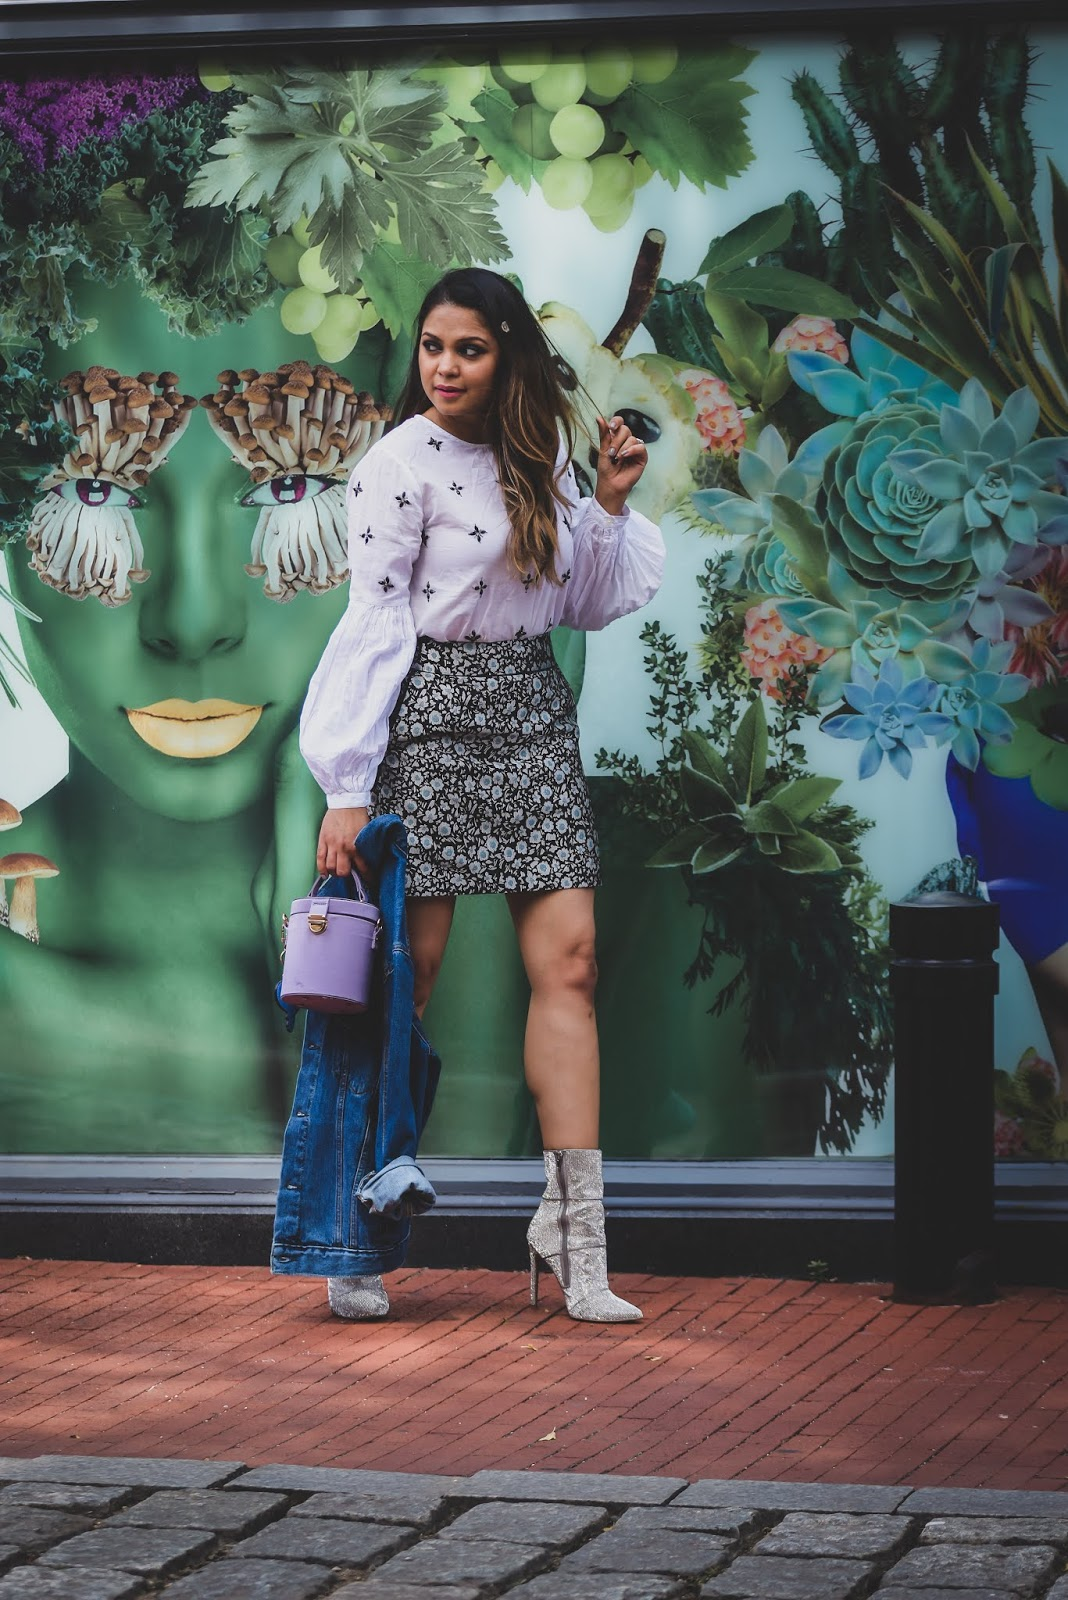 how to wear sequin booties this fall, fall mini kirt outfit, jacquard skirt, white blouse, hair style, fall fashion, street style, denim jacket, personalized denim jacket, fashion, myriad musings